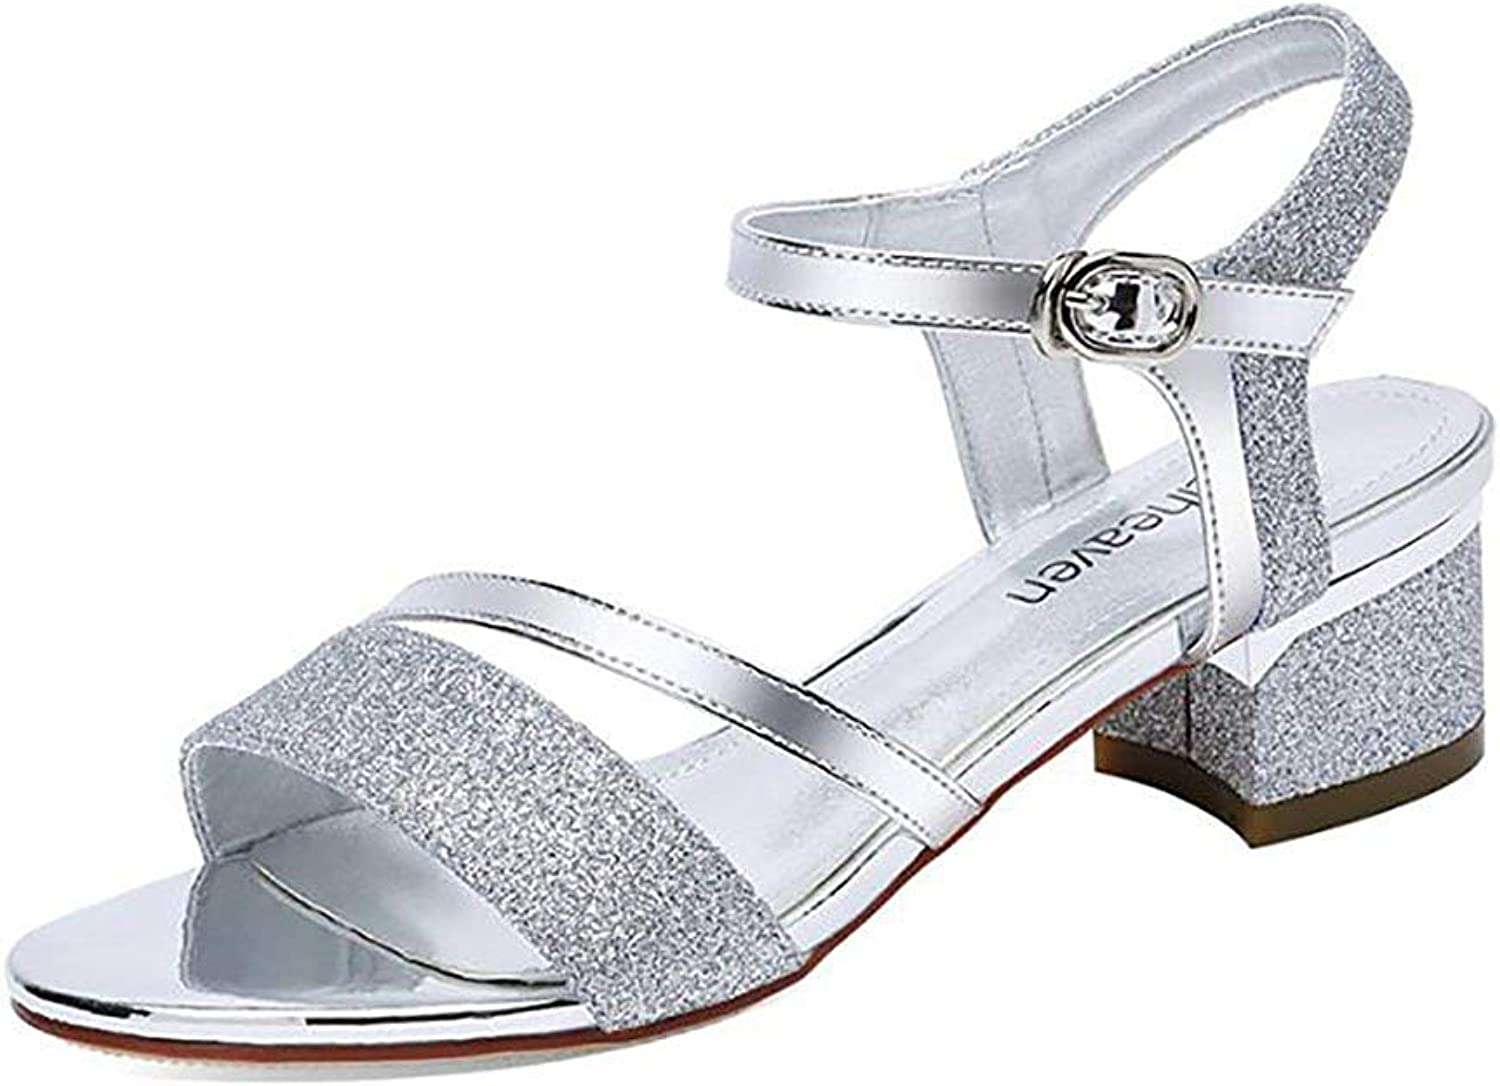 Comfortable and beautiful ladies sandals Word Buckle Strap Sandals New Wild Ladies in Heel shoes.